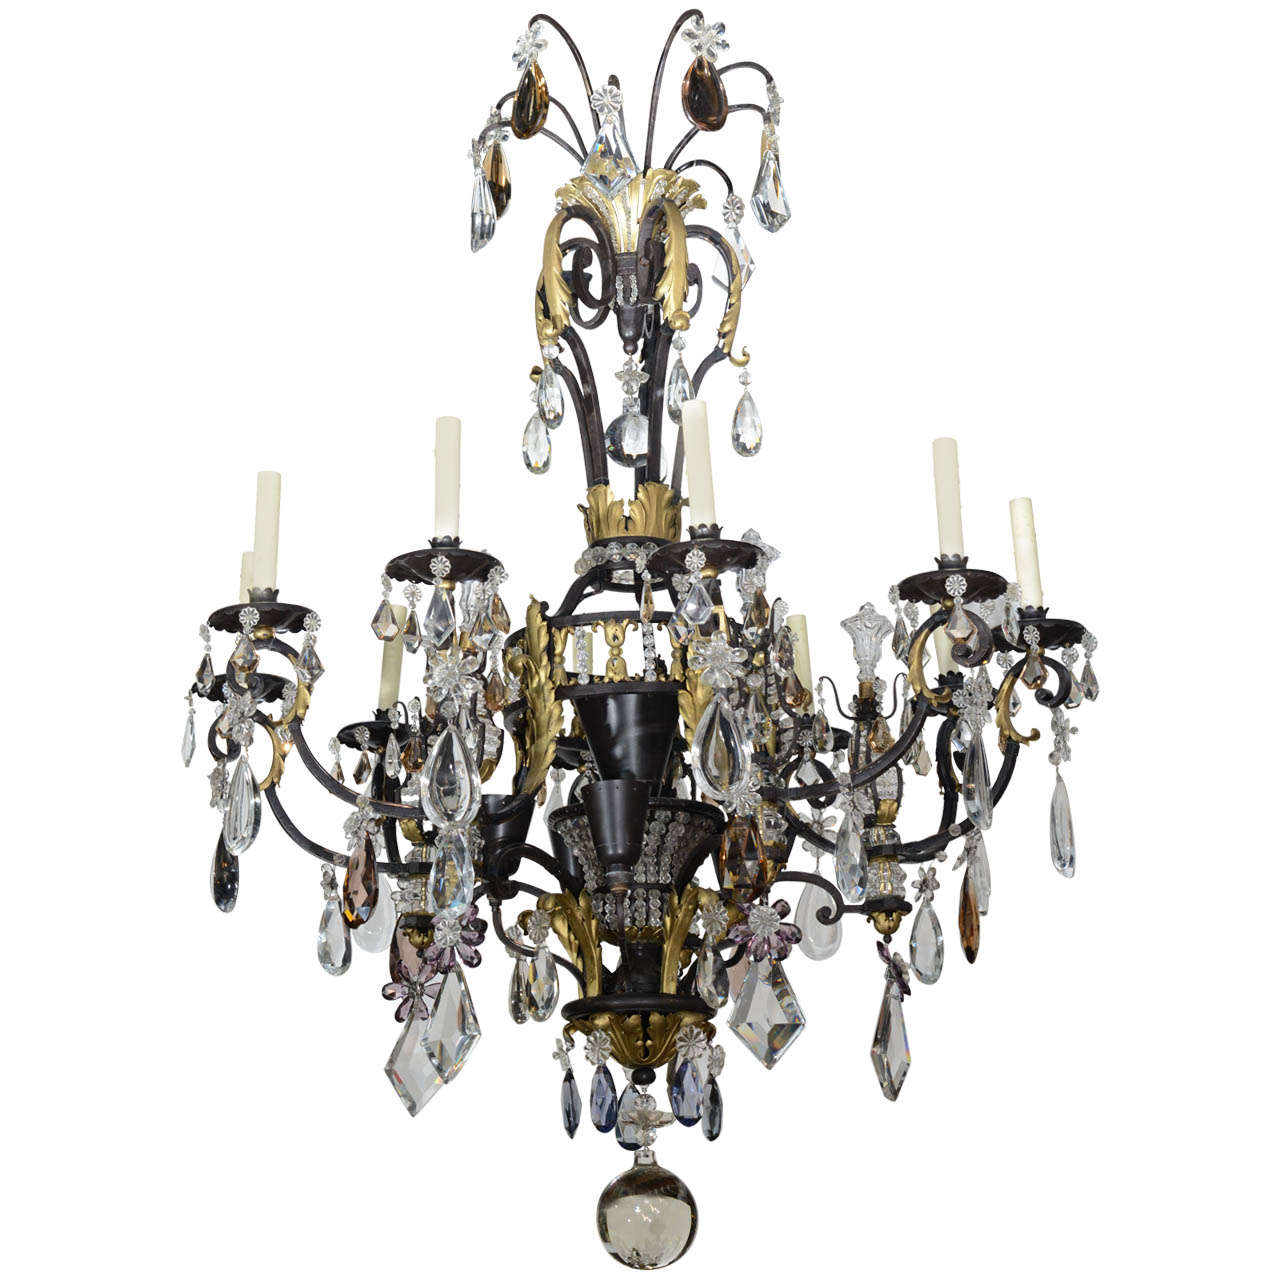 chandeliers of fixtures lights previous chandelier next zoom and tuscany crystal contemporary wrought iron ceiling mini